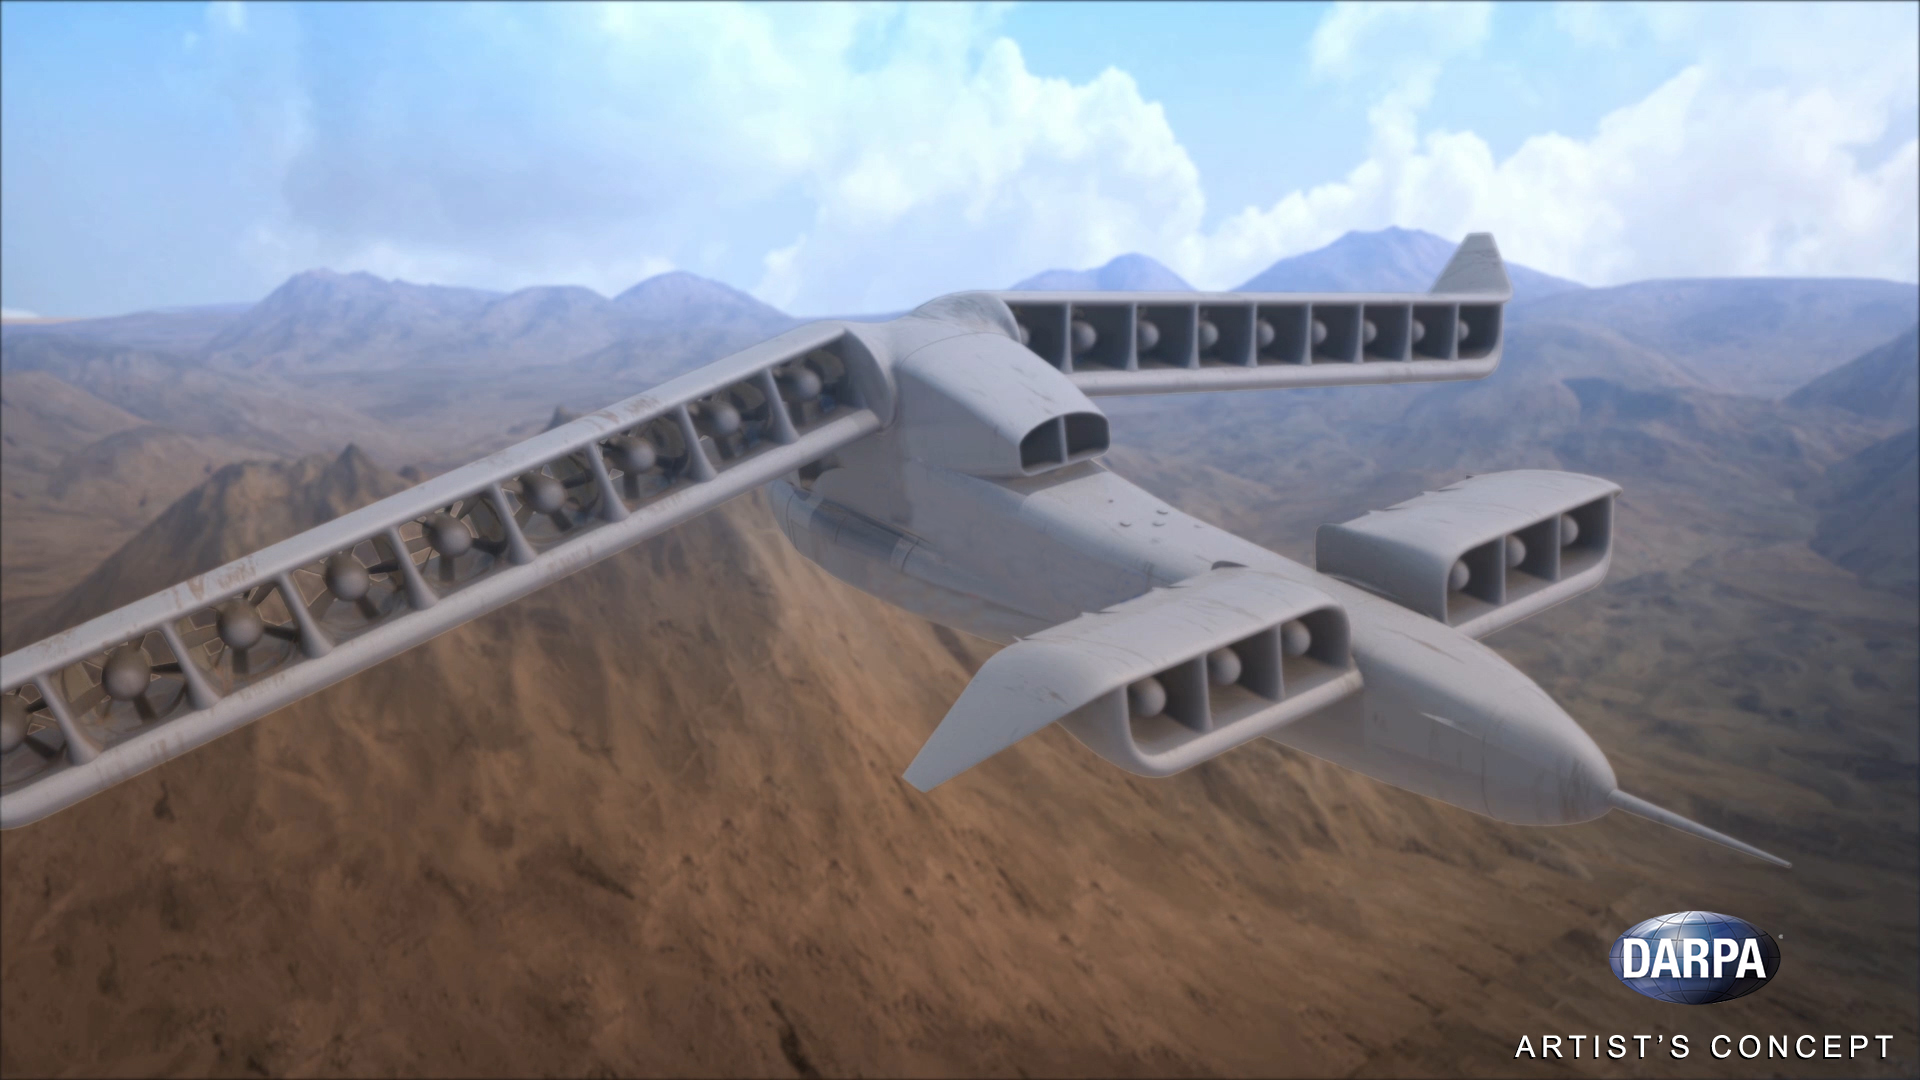 With the recent advances in technology and design aircraft concepts - Images